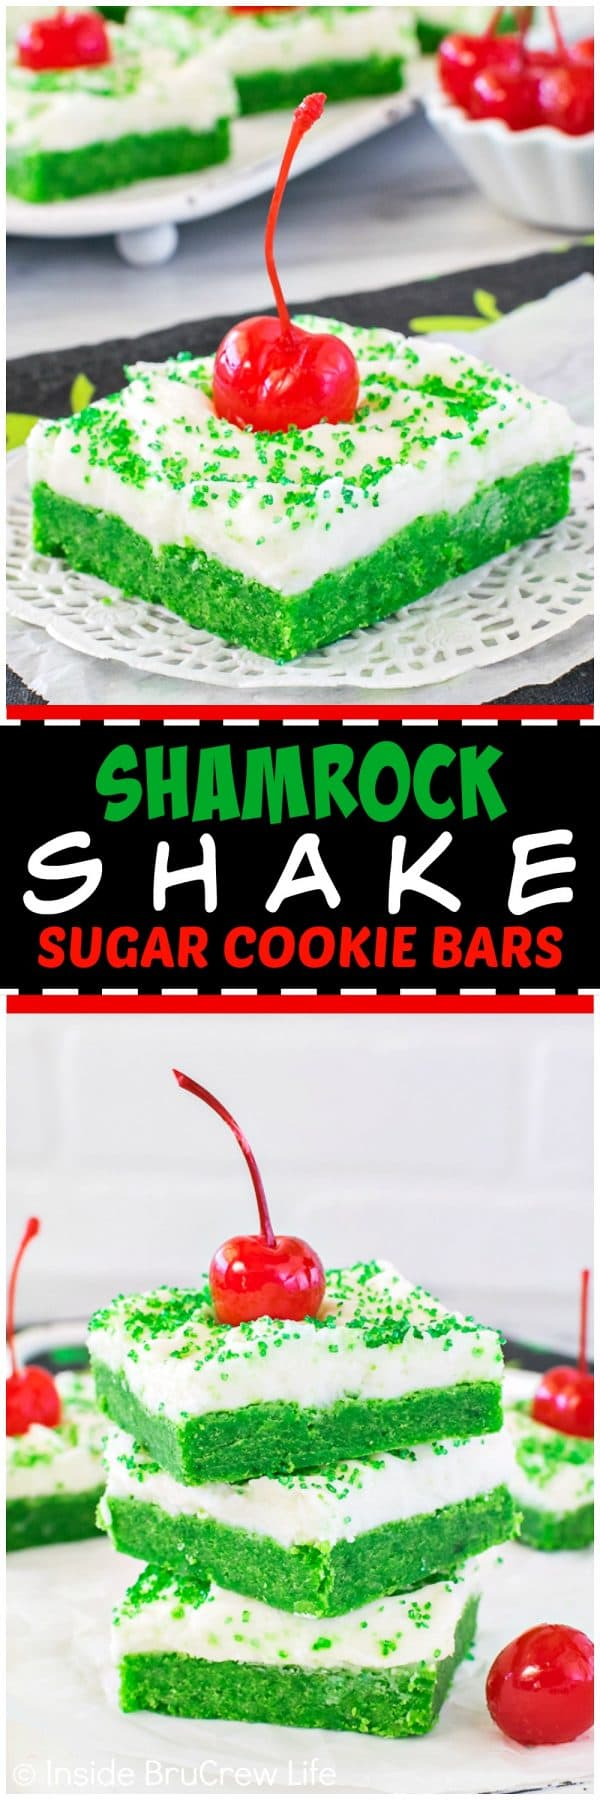 Shamrock Shake Sugar Cookie Bars - easy mint cookie bars with creamy frosting, green sugar, and a cherry make them look like the popular shake. Great dessert for St. Patrick's day parties!